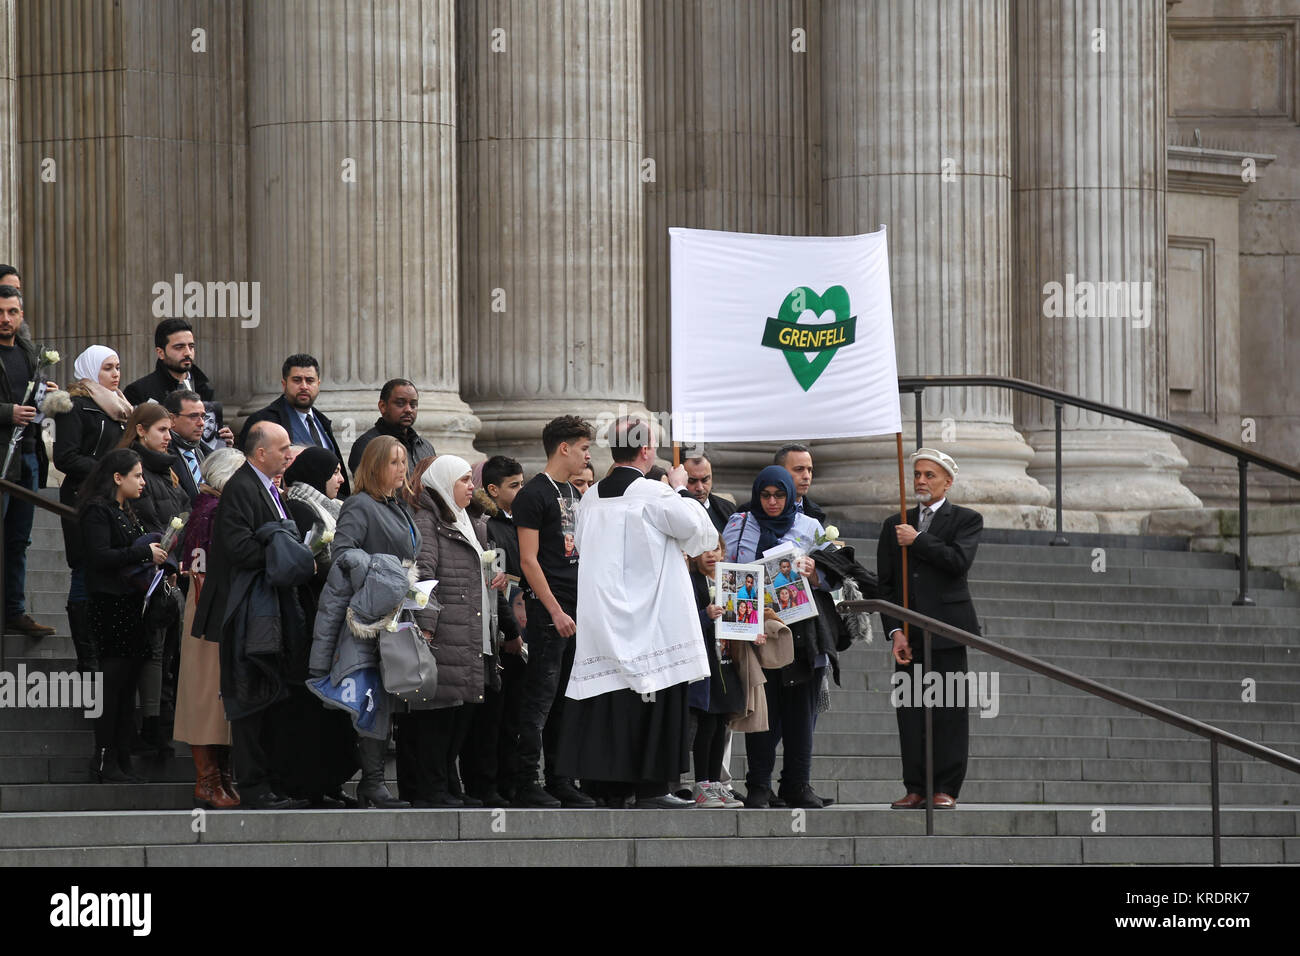 London, UK. 14th December, 2017. Survivors and families of the bereaved attend the Grenfell Tower fire memorial - Stock Image